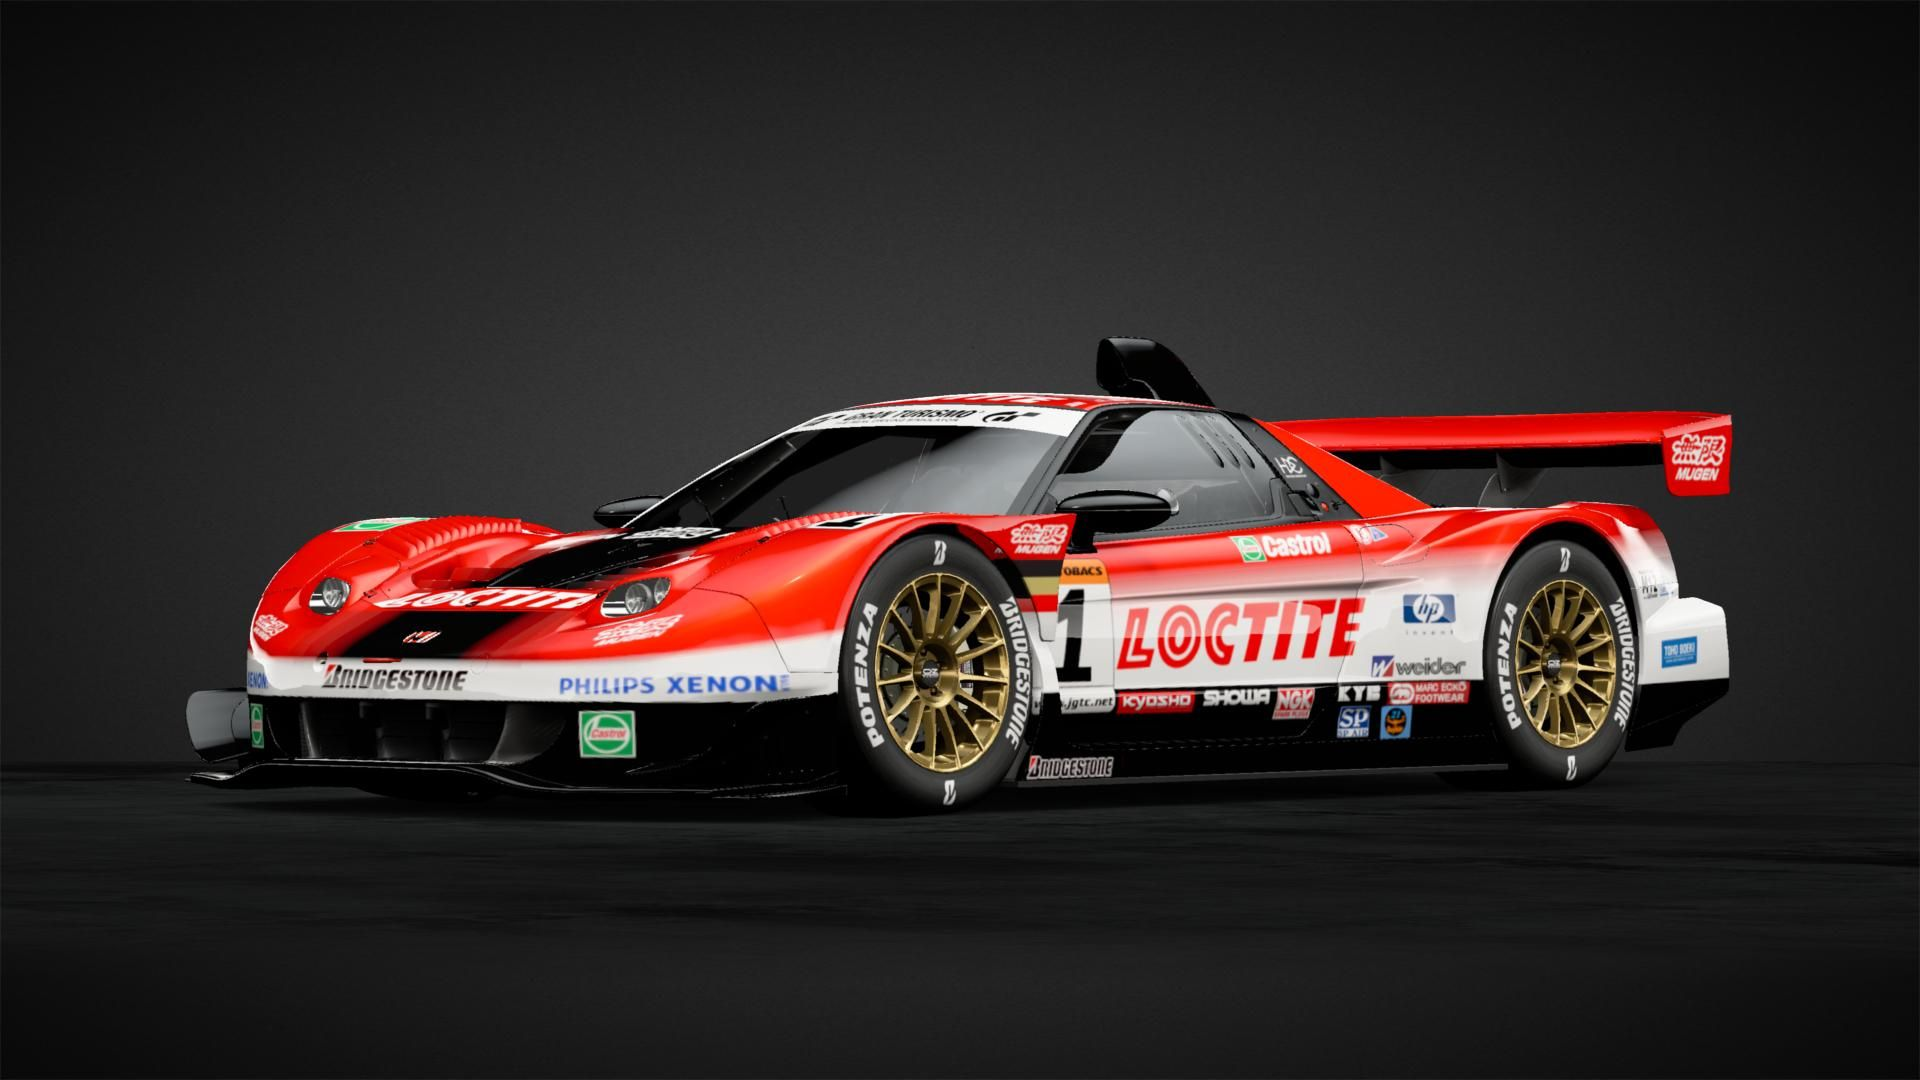 Loctite Mugen Nsx 01 Jgtc Car Livery By Daveyboyessex Community Gran Turismo Sport In 2020 Nsx Car Dream Cars